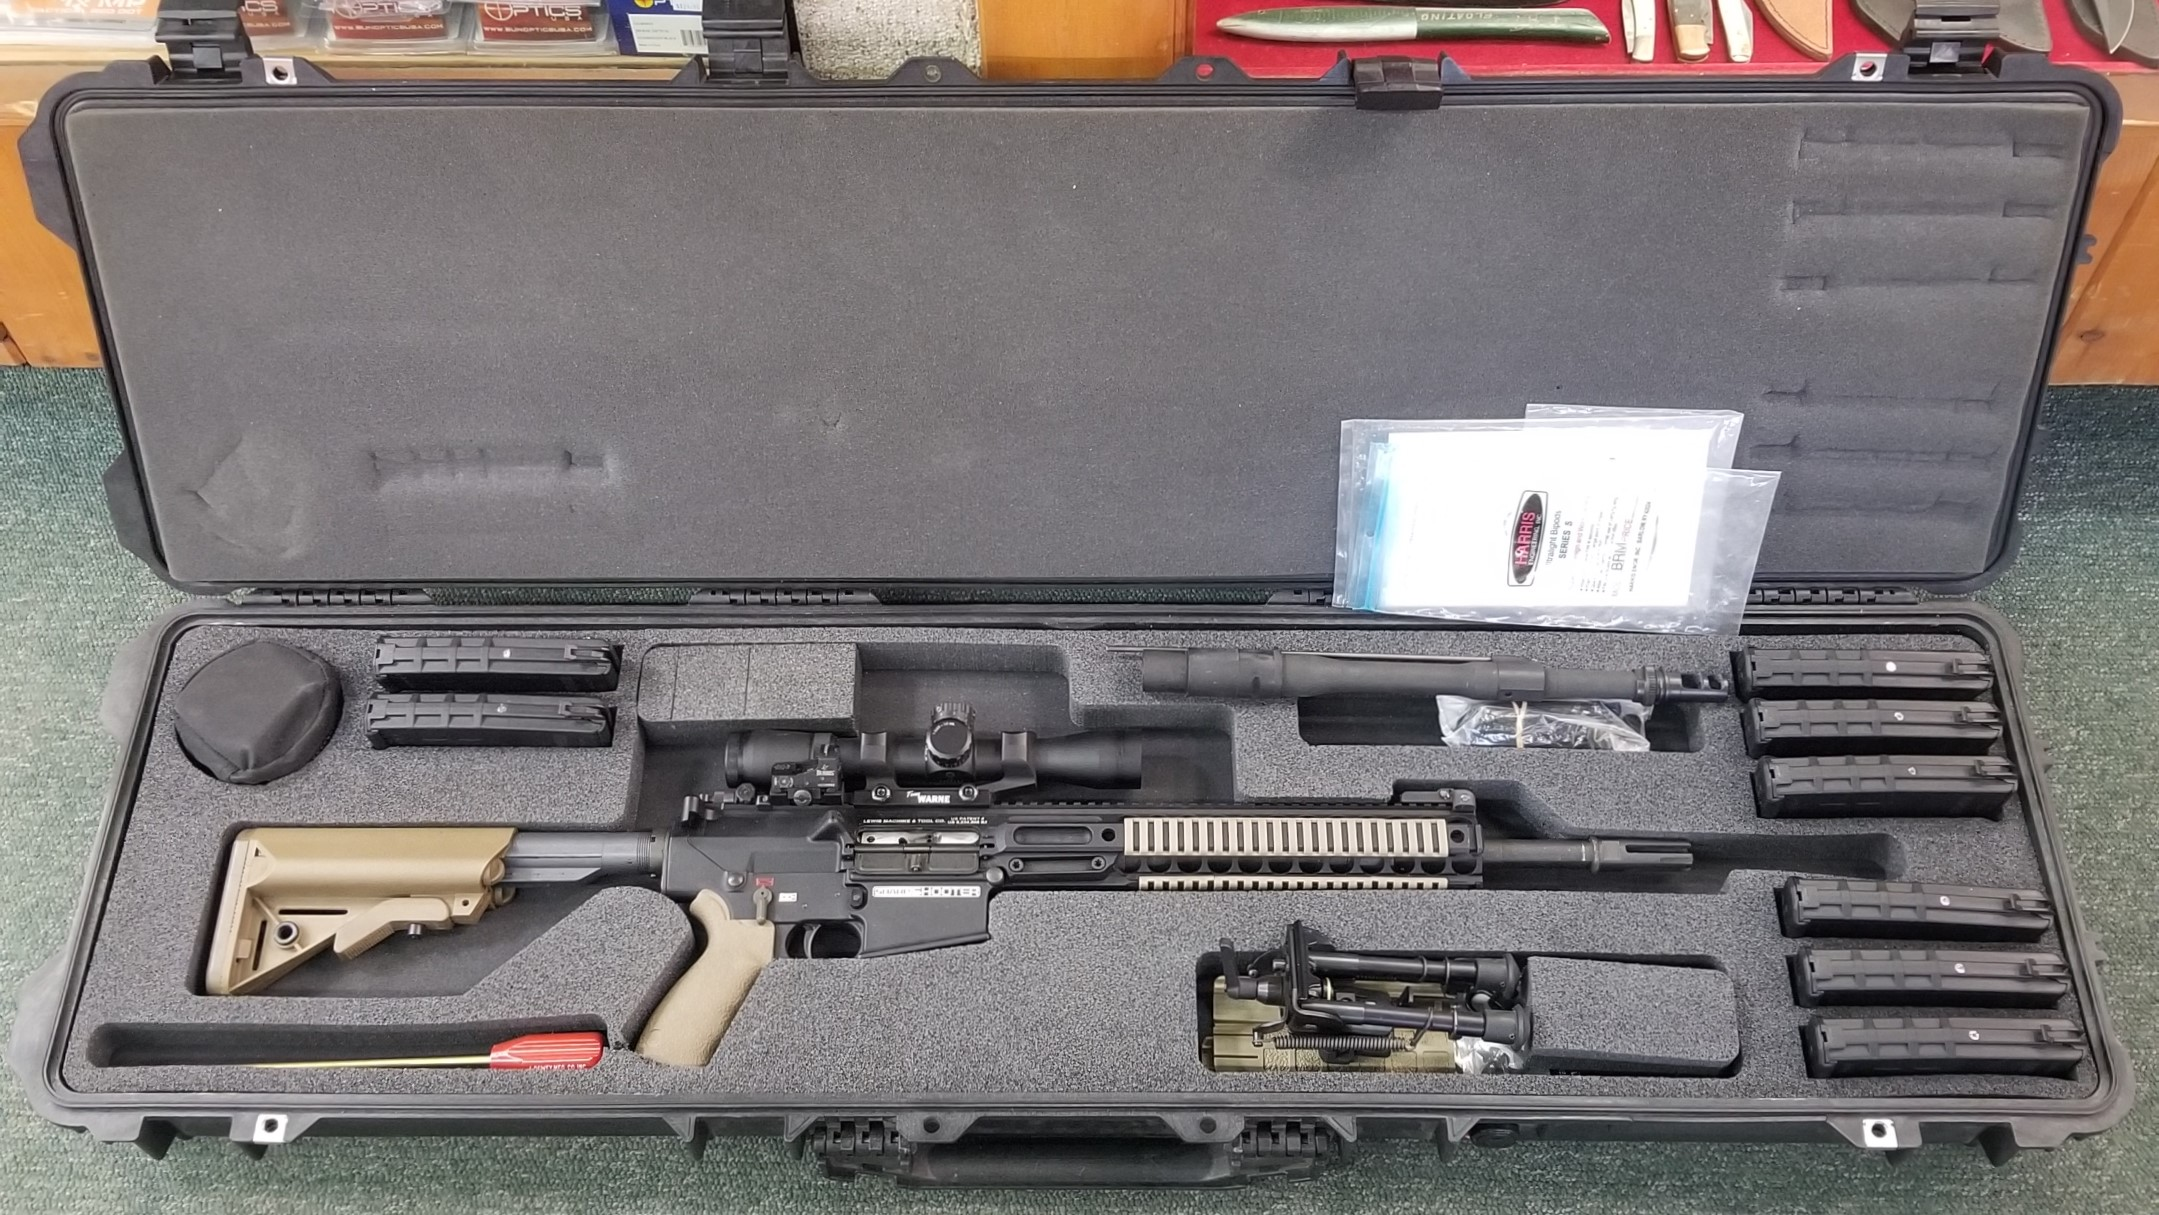 L.M.T Sharpshooter™ Rifle Weapon System .308 win (USED)